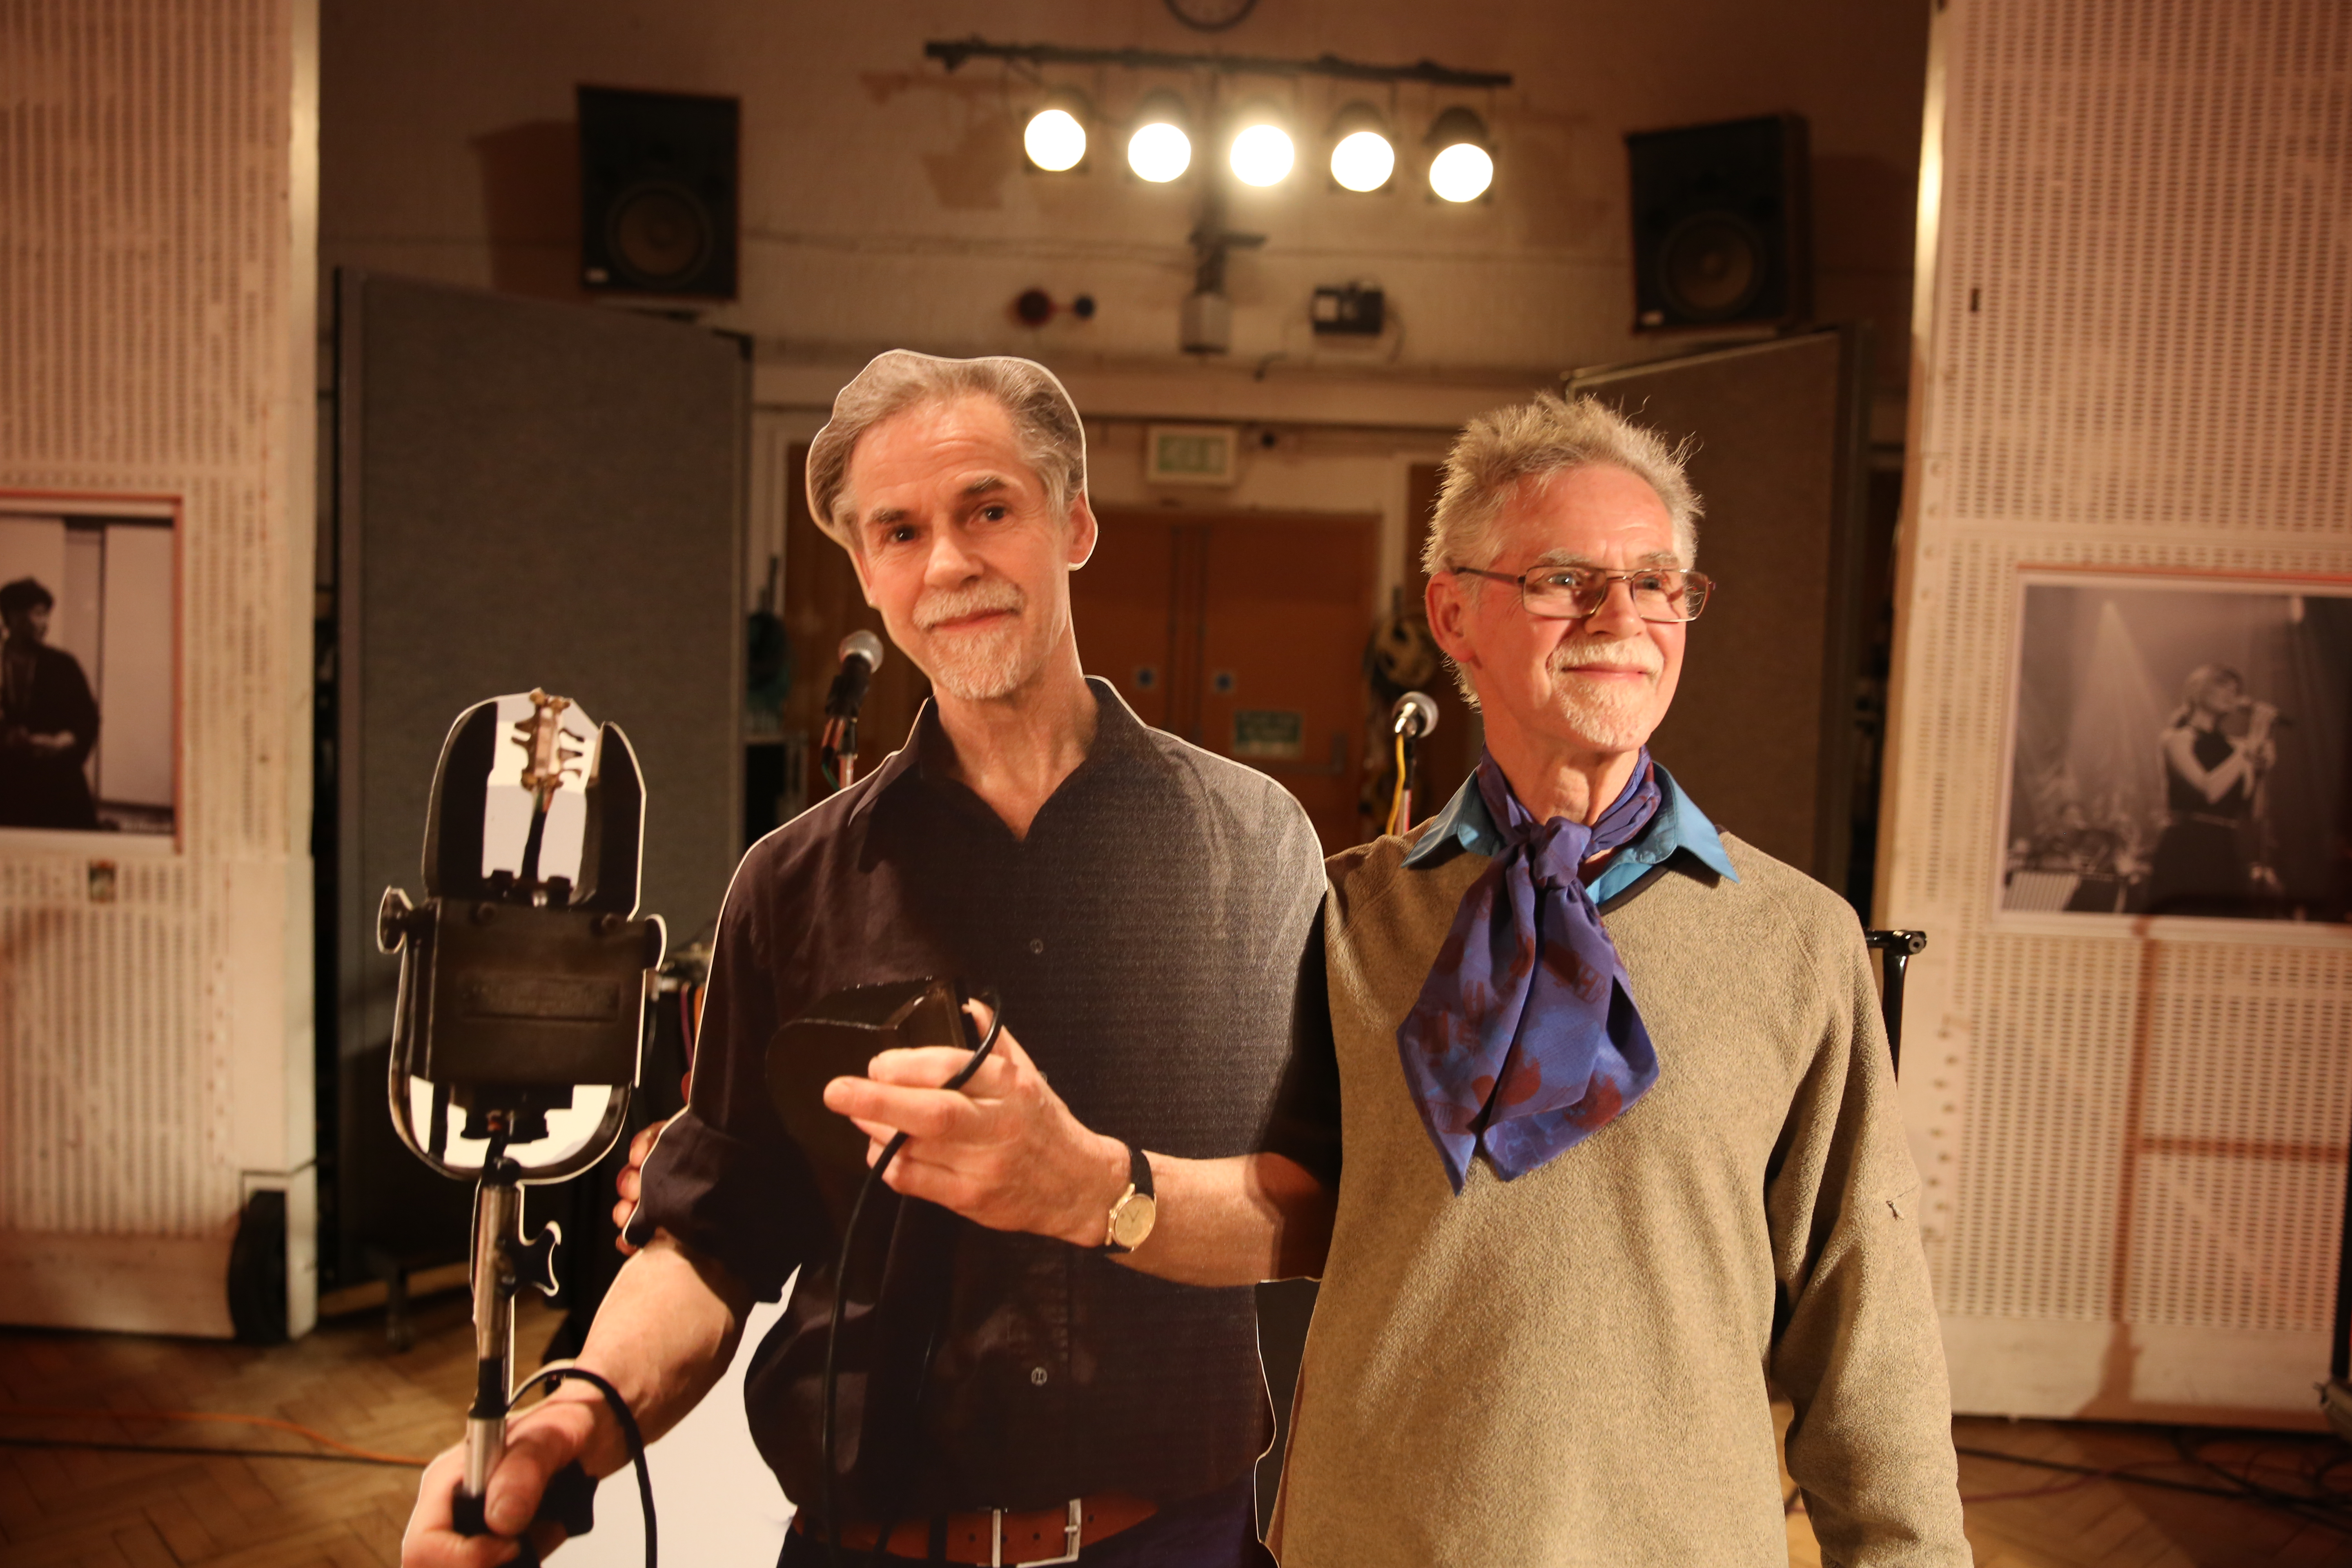 Lester celebrates his 50th year at Abbey Road